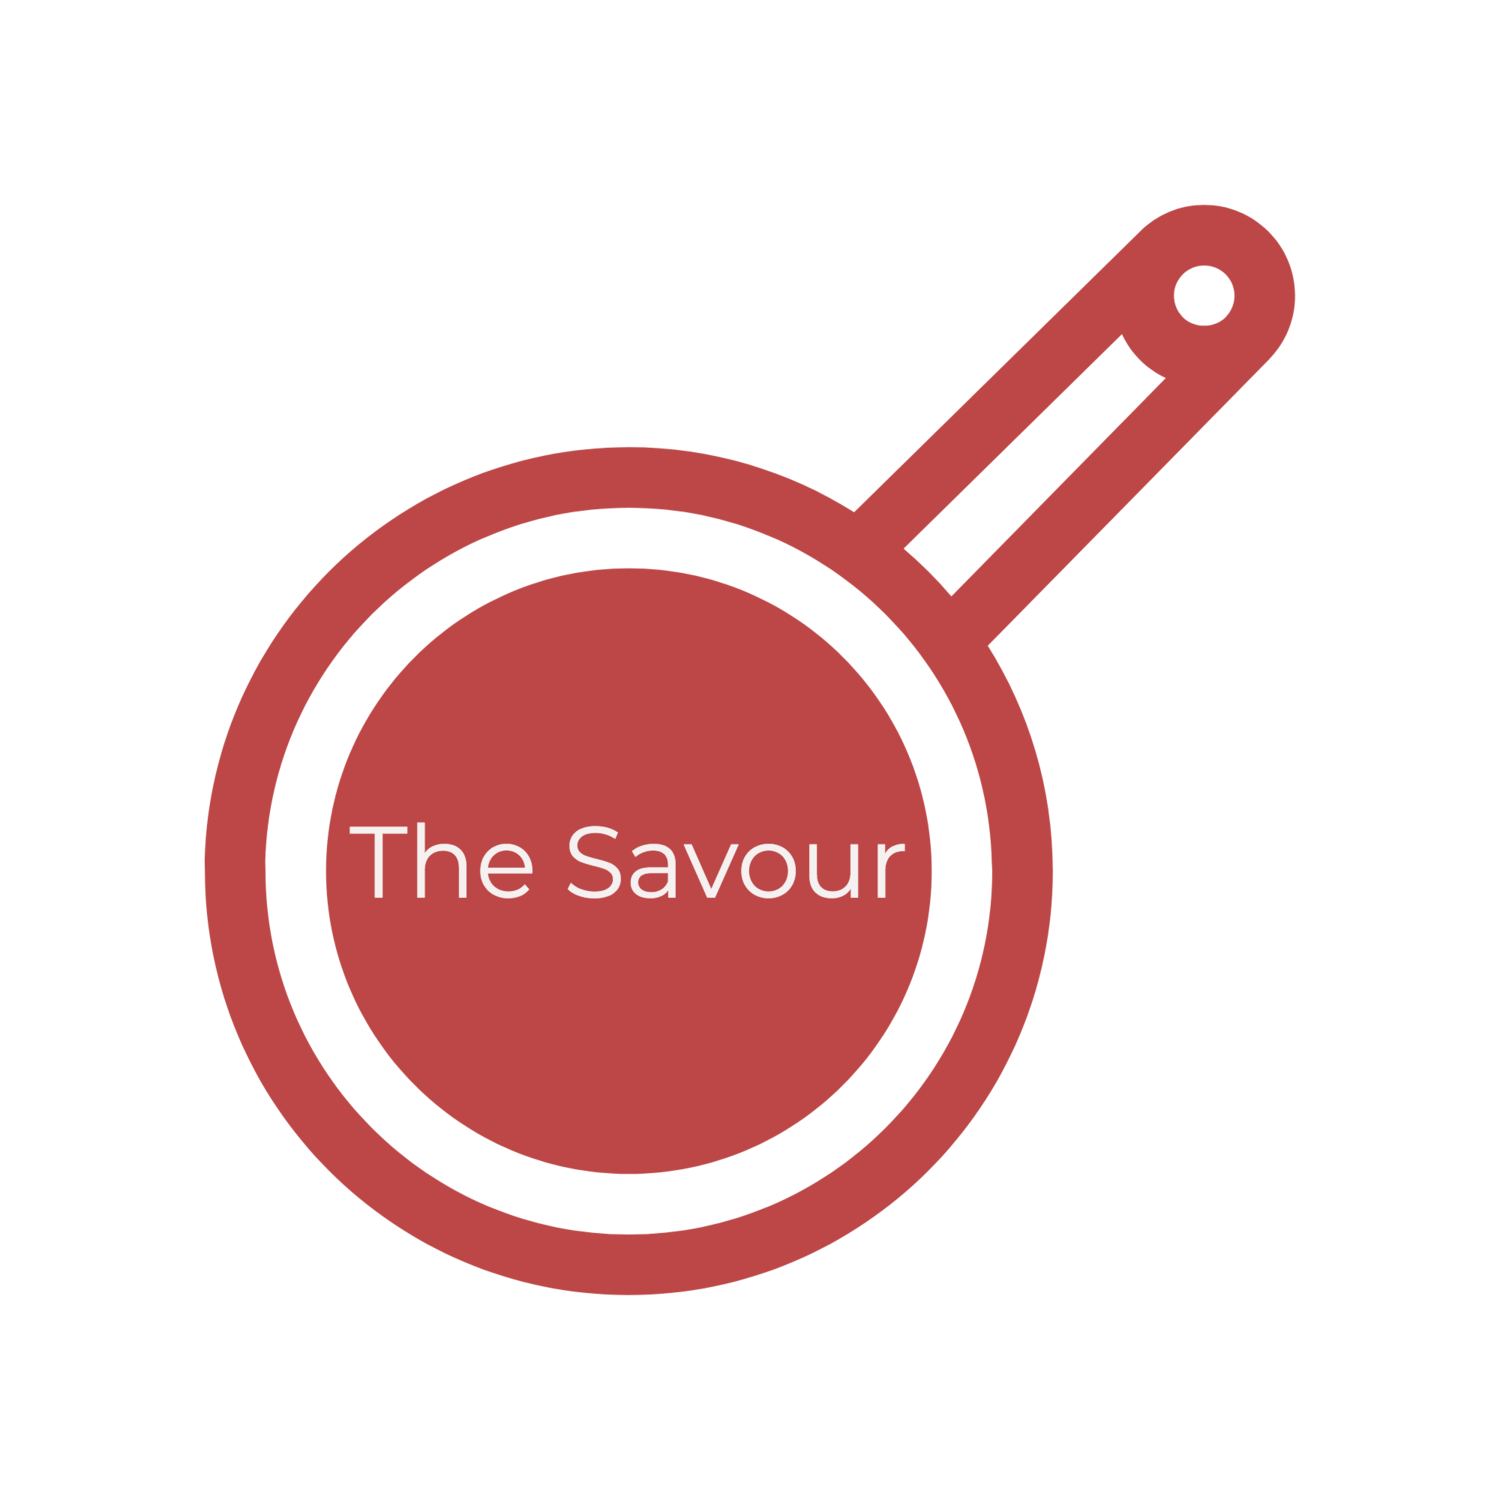 The Savour | A food blog with delicious, simple recipes